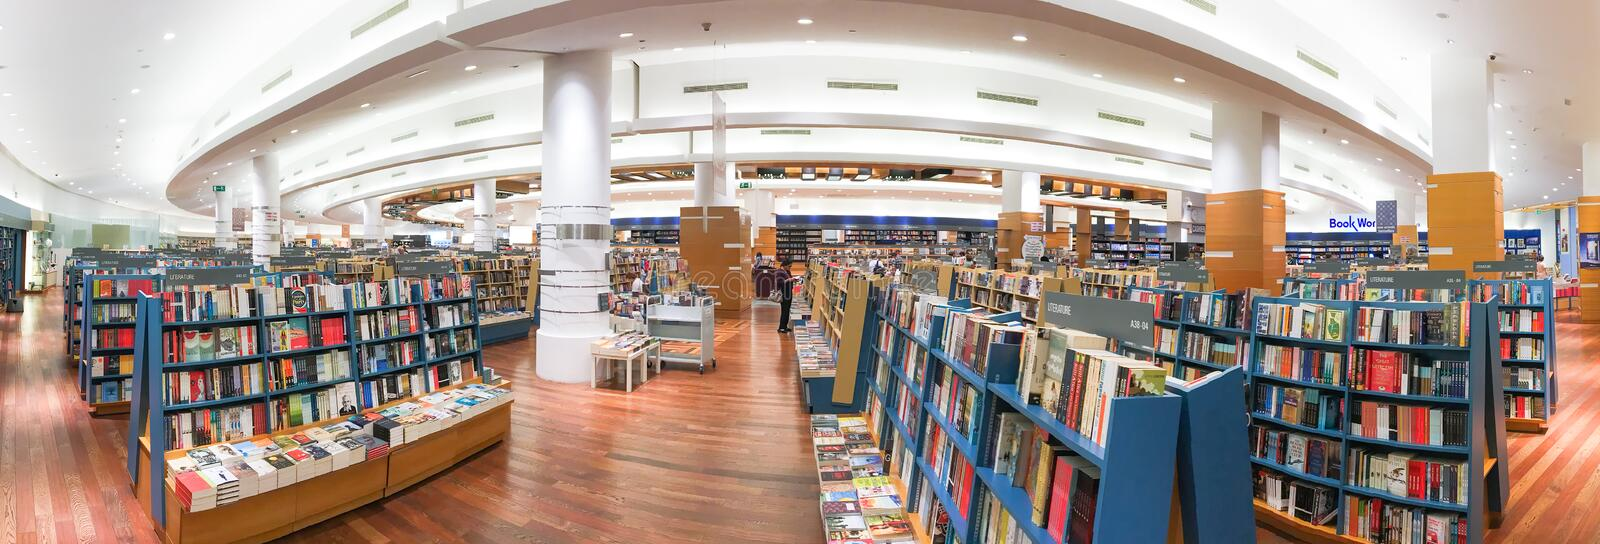 Library of Mall of emirates stock photography